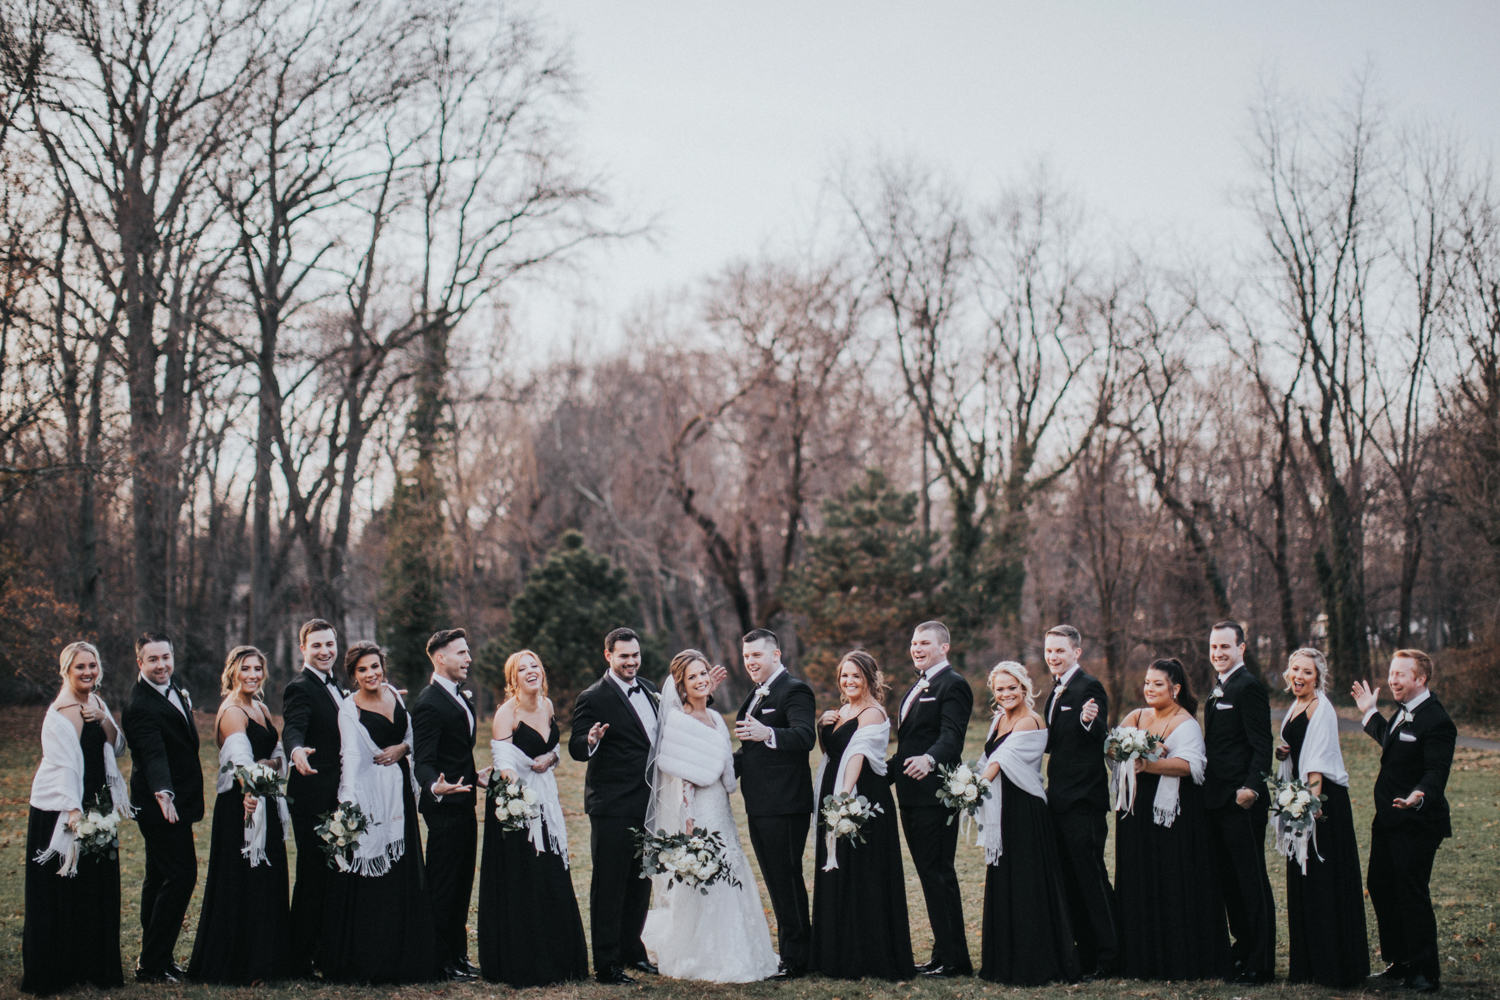 The-Mansion-NJ-Wedding-Jenna-Lynn-Photography-BriannaJimmy-BridalParty-8.jpg